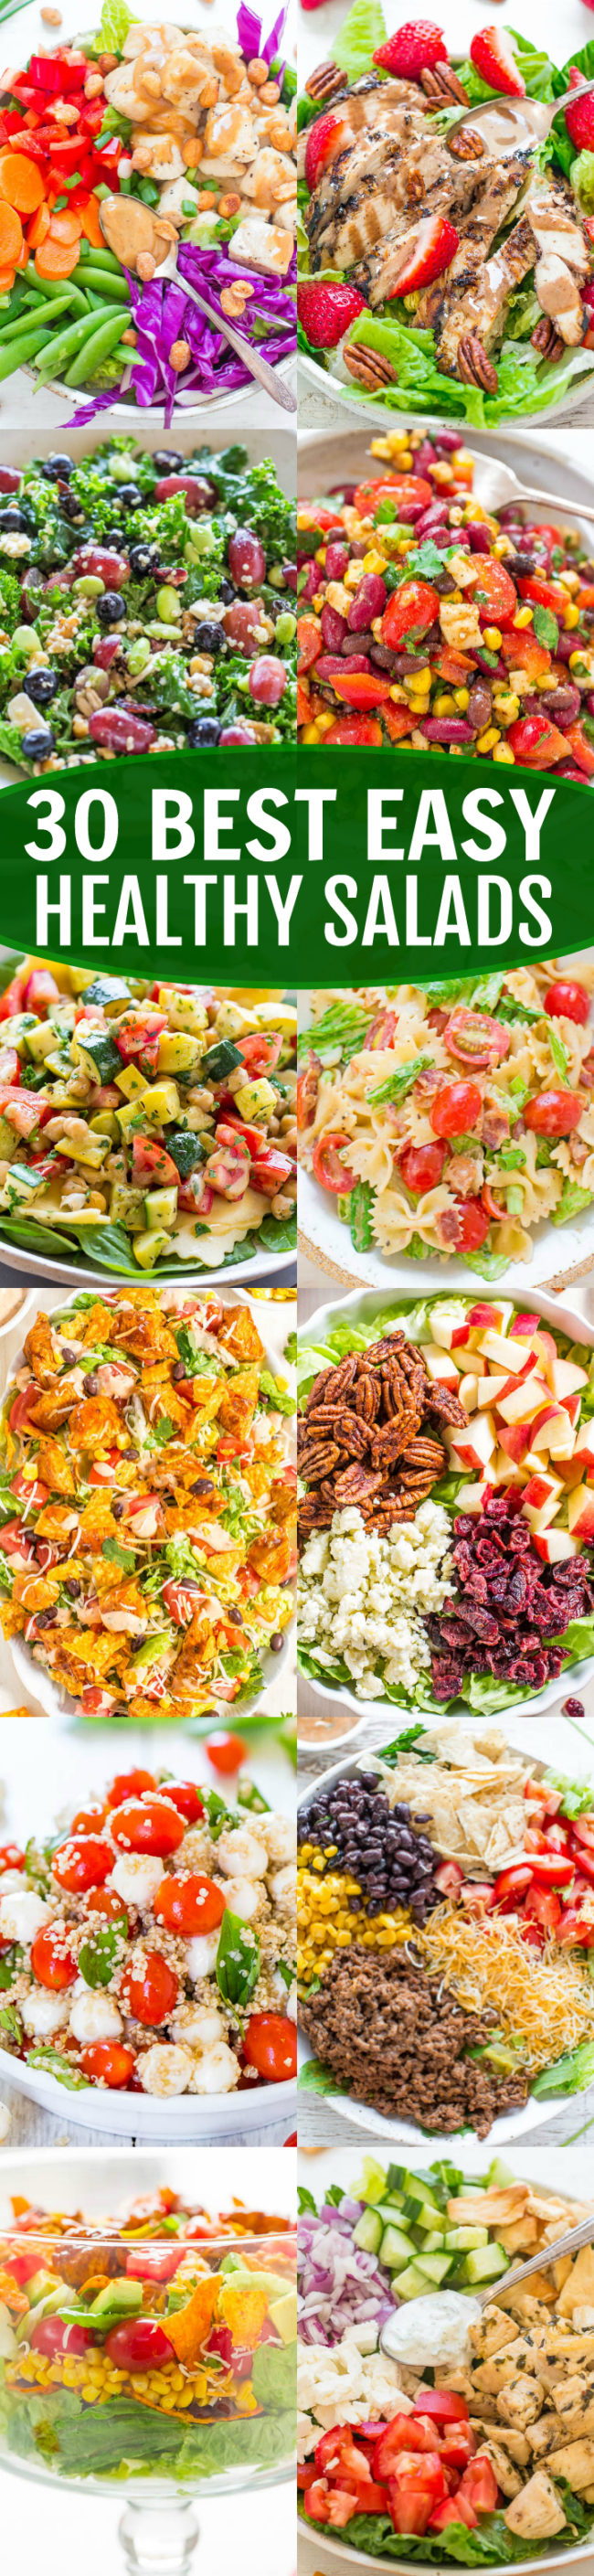 30 Best Easy Healthy Salads collage